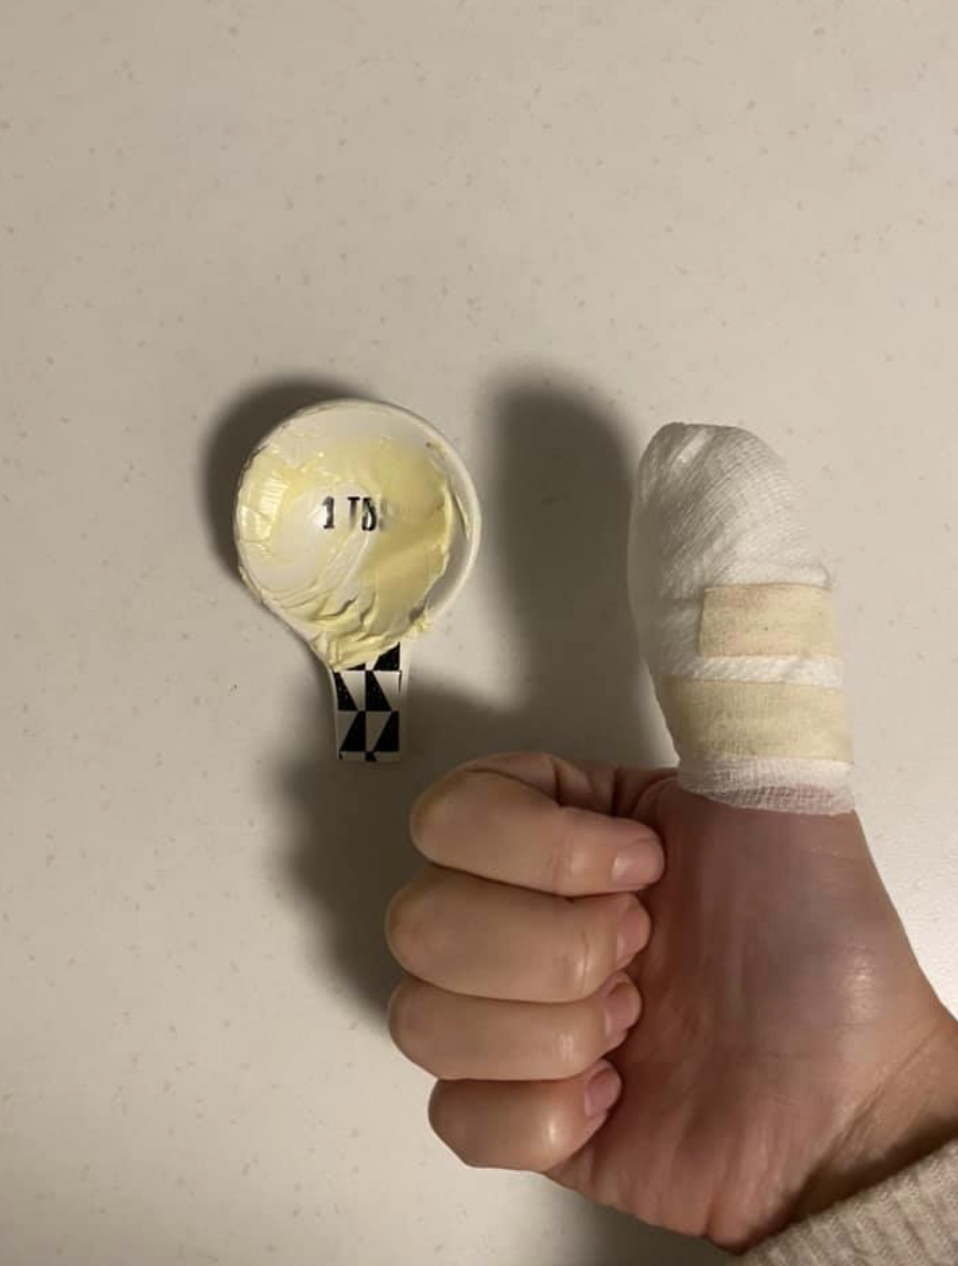 The mother said the Kmart measuring spoon left her with a deep cut in her thumb. Source: Facebook